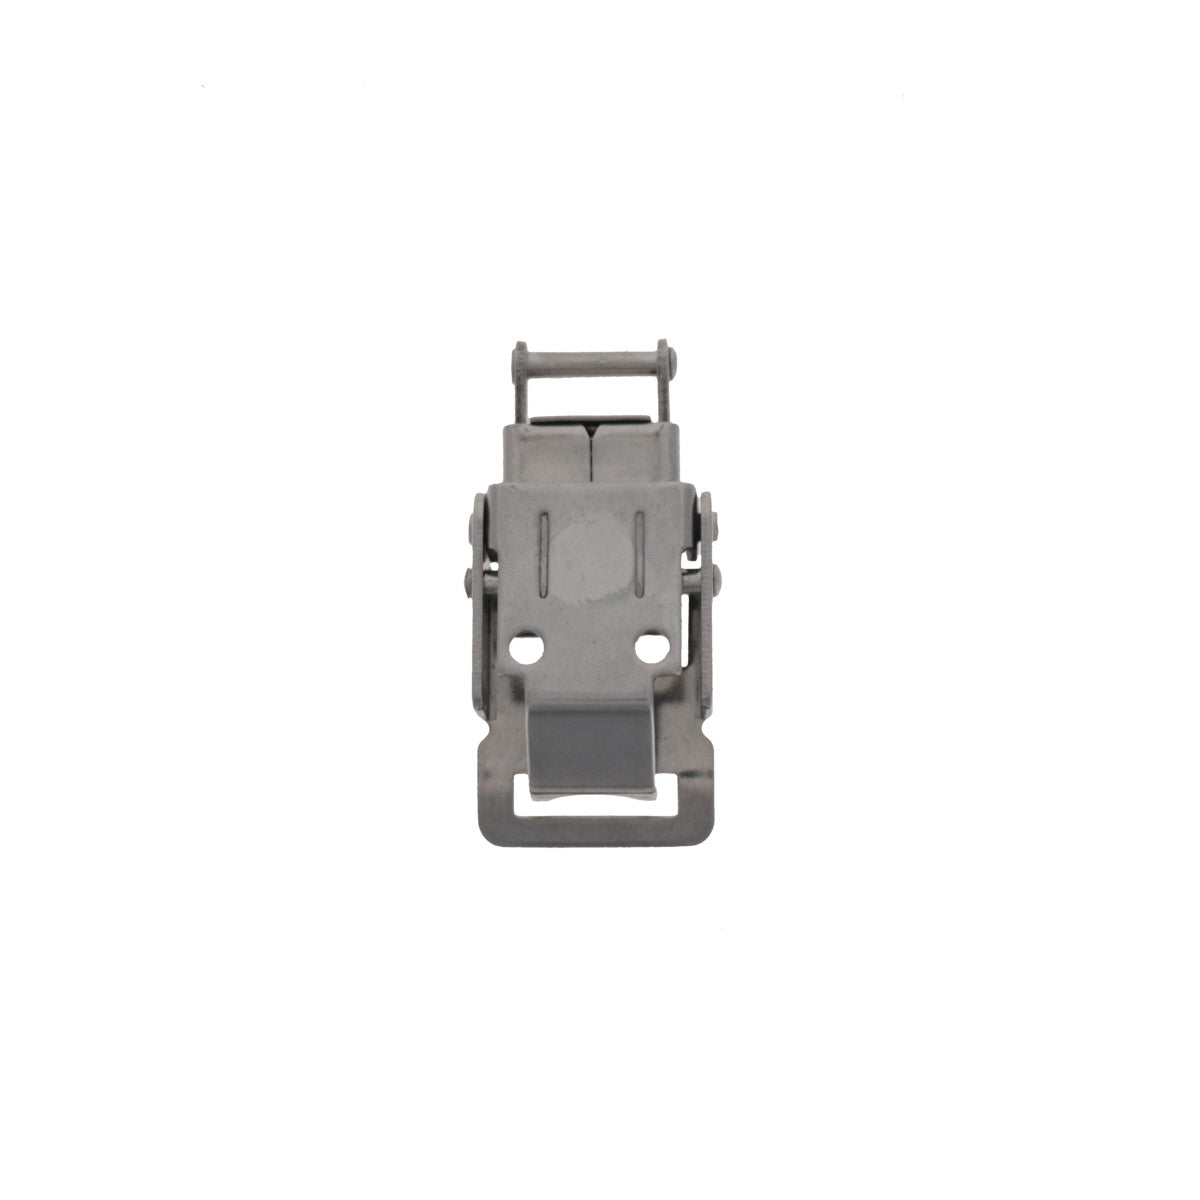 Pad lockable Compression Spring Drawlatch with upswept Lever, back view